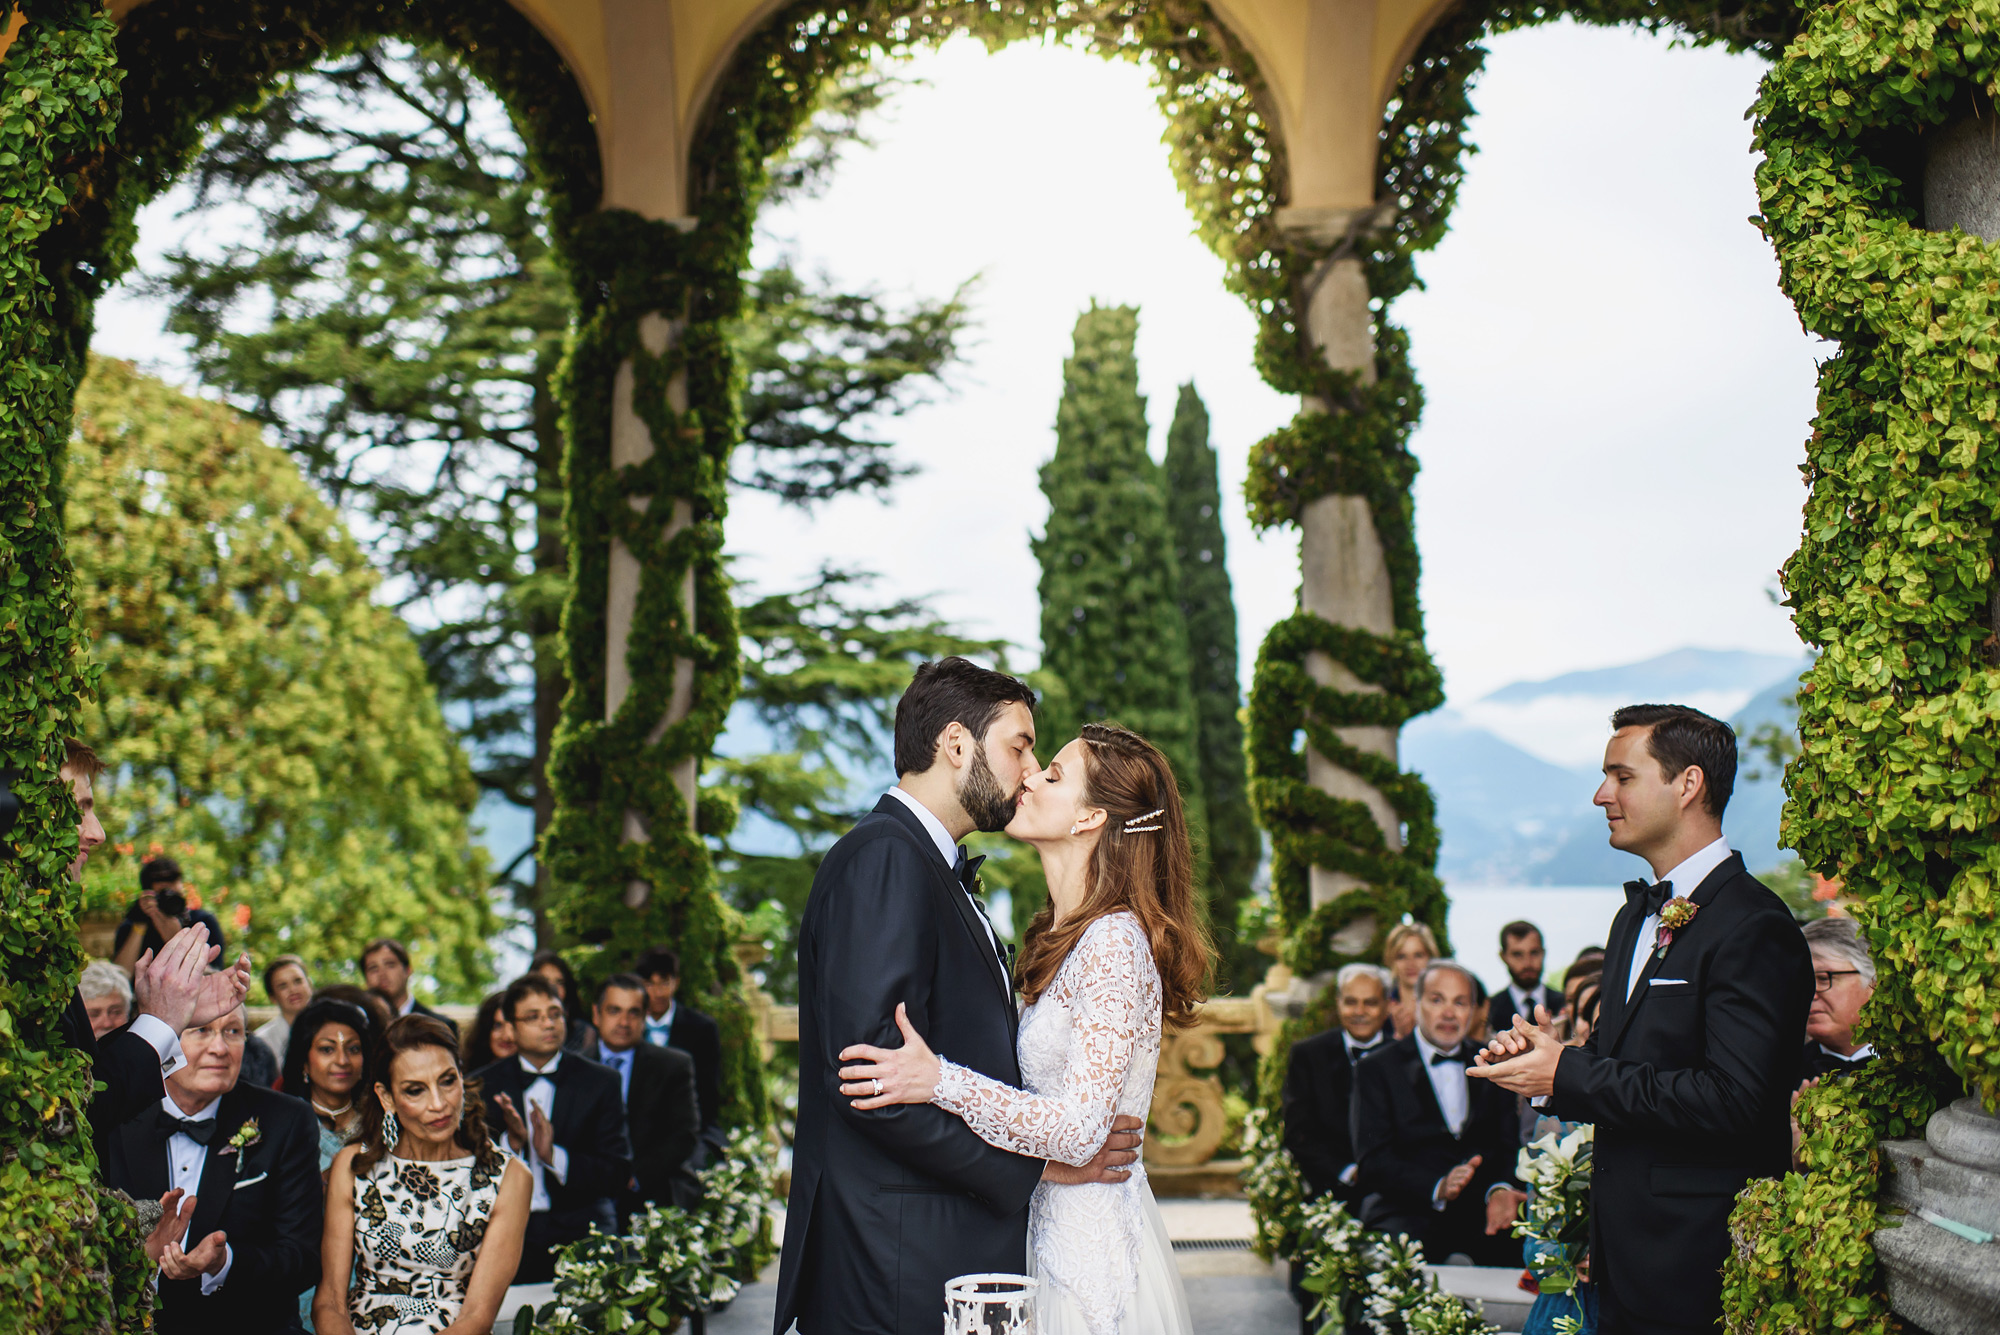 Garden ceremony kiss at Lake Como - photo by Ross Harvey